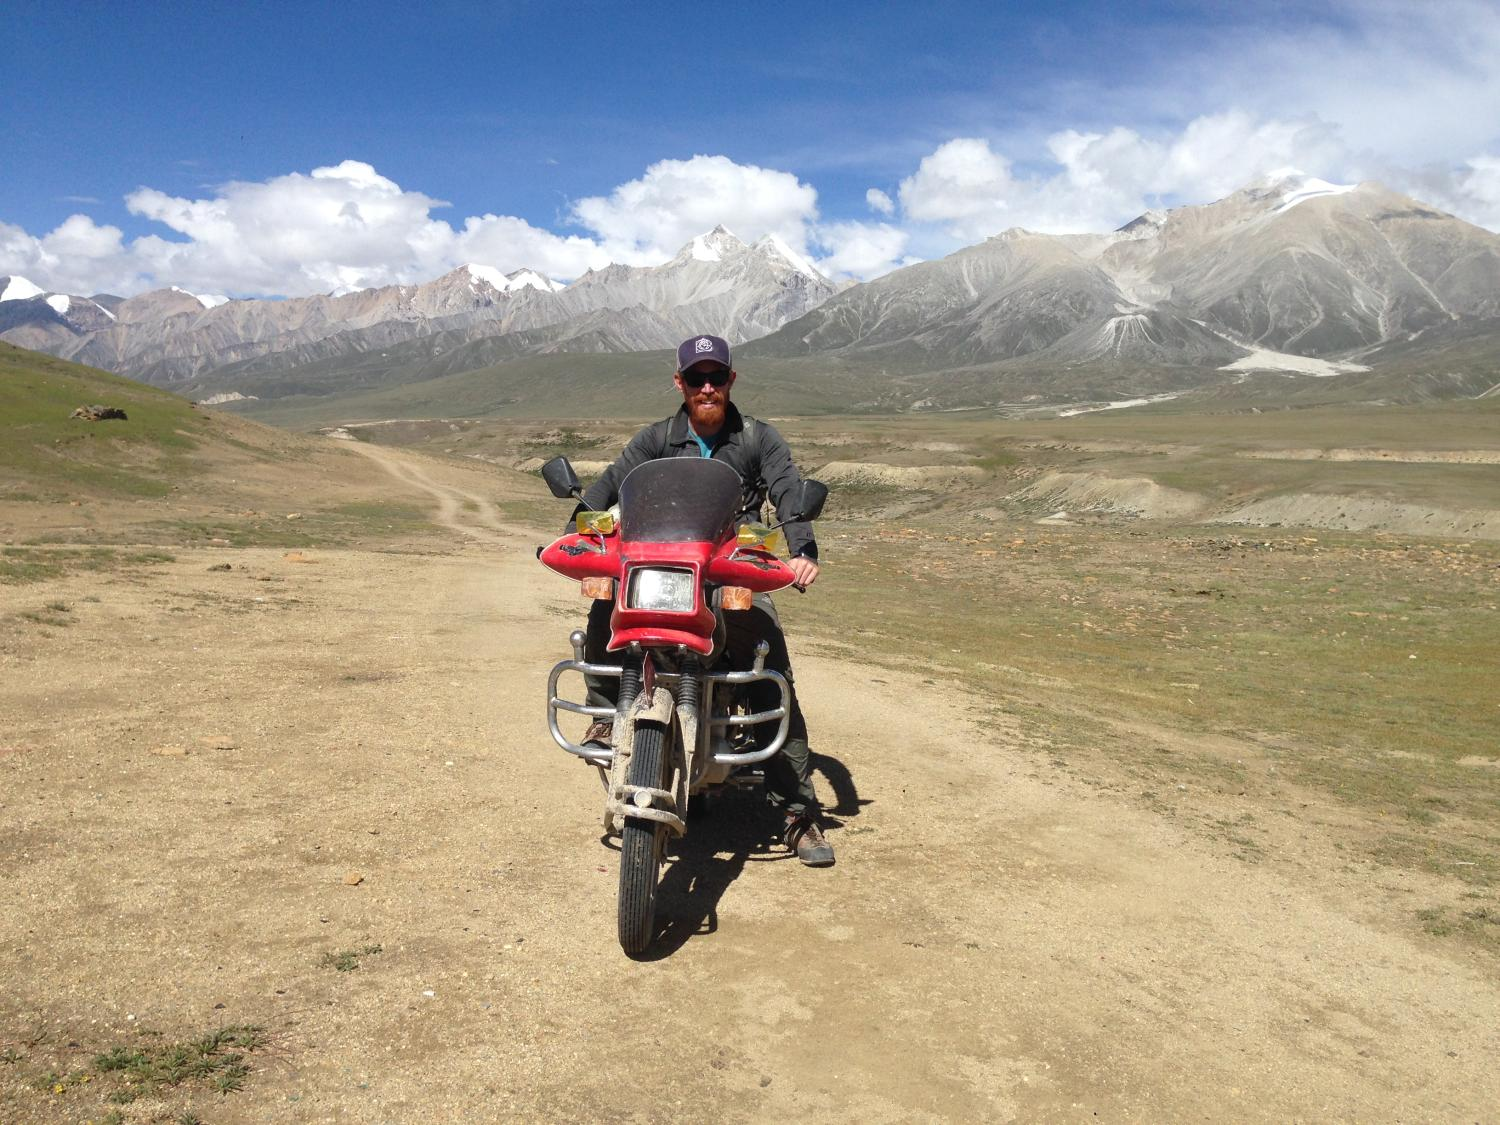 I used motorcycles to reach all three Nepal-China border posts. Here I'm sitting on my friend's Chinese motorcycle atop the Kora-la